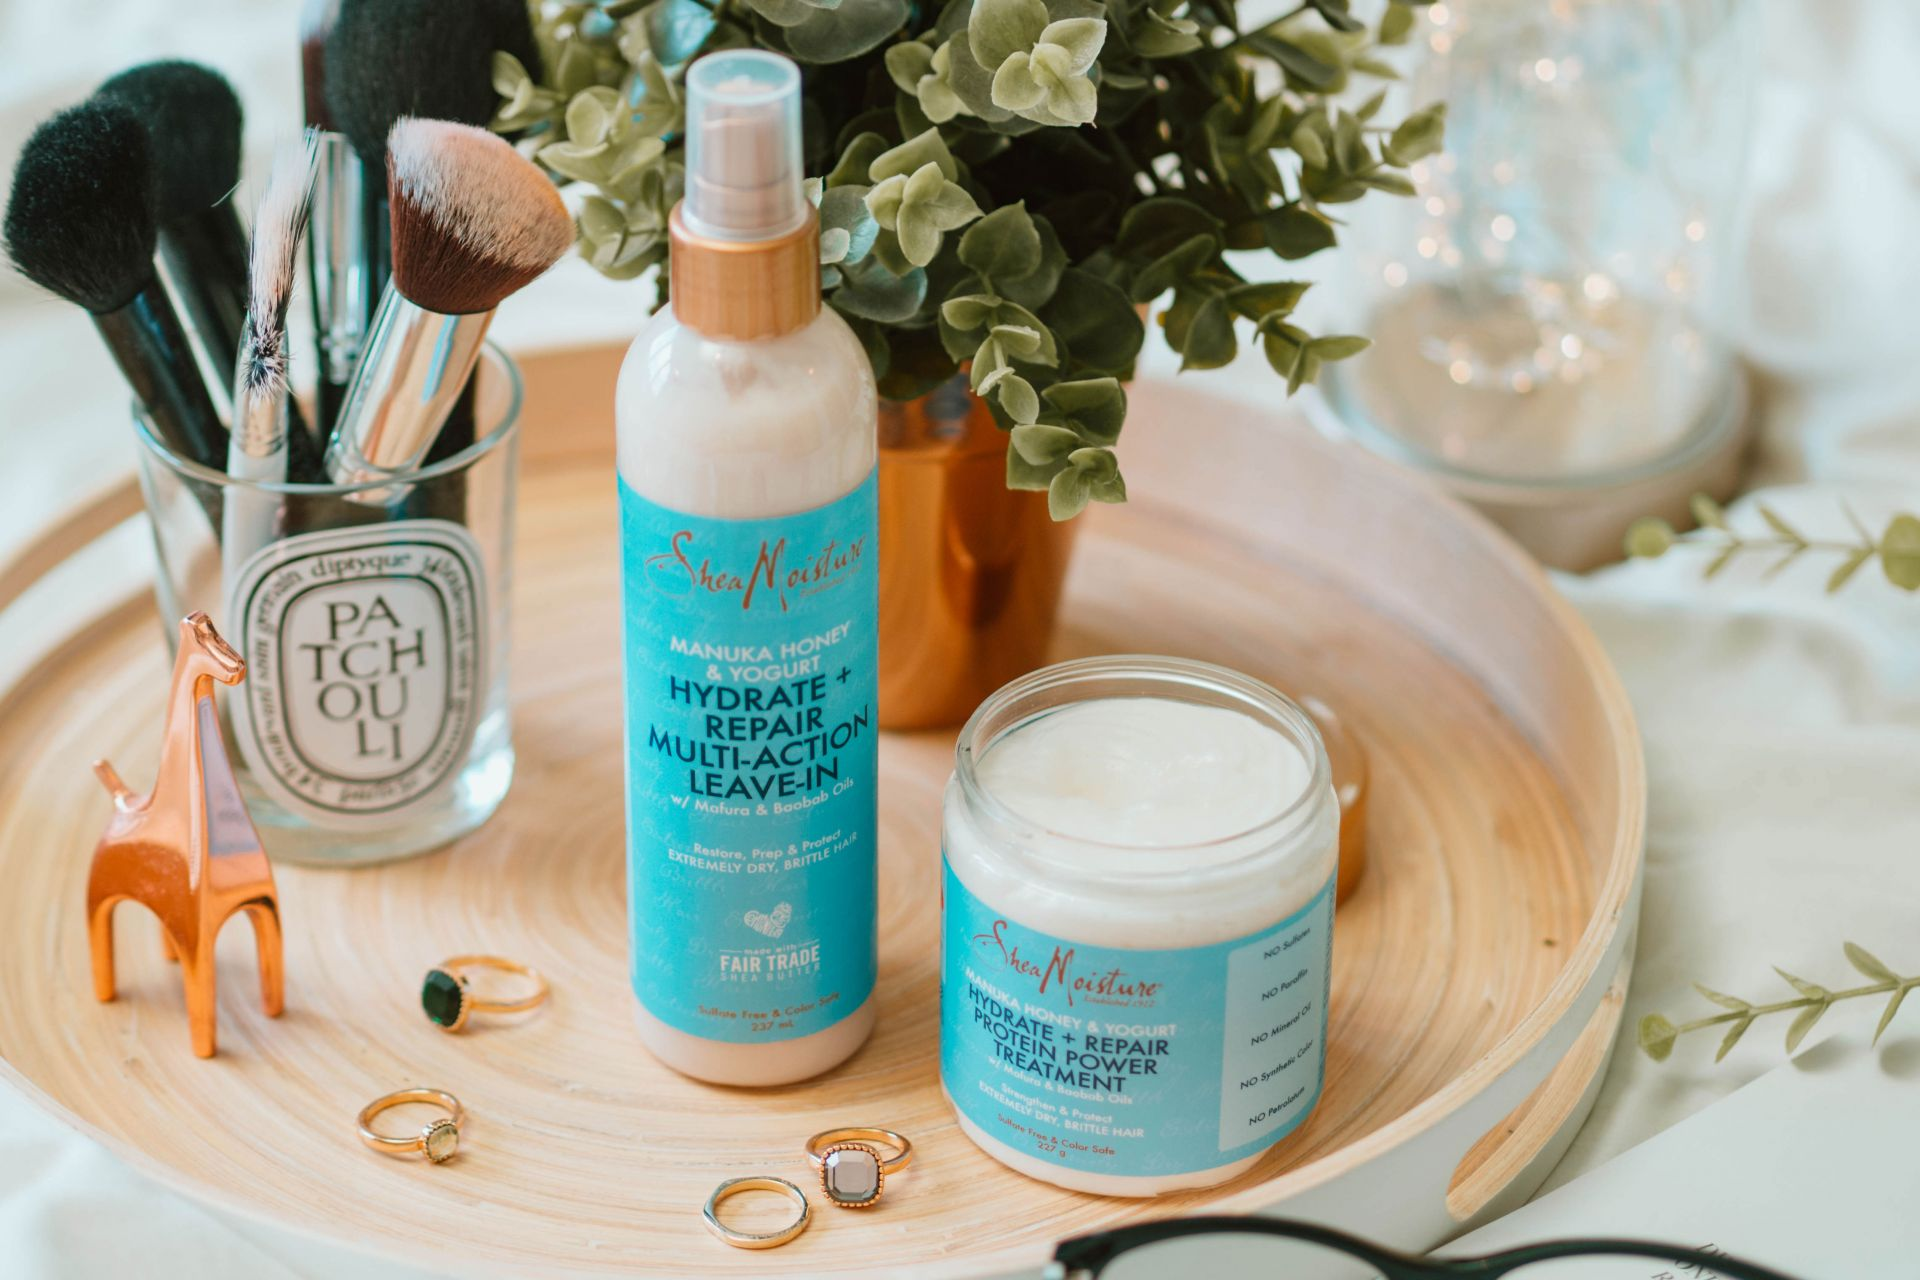 Organic hair care products - Shea Moisture Manuka Honey & Yogurt Range